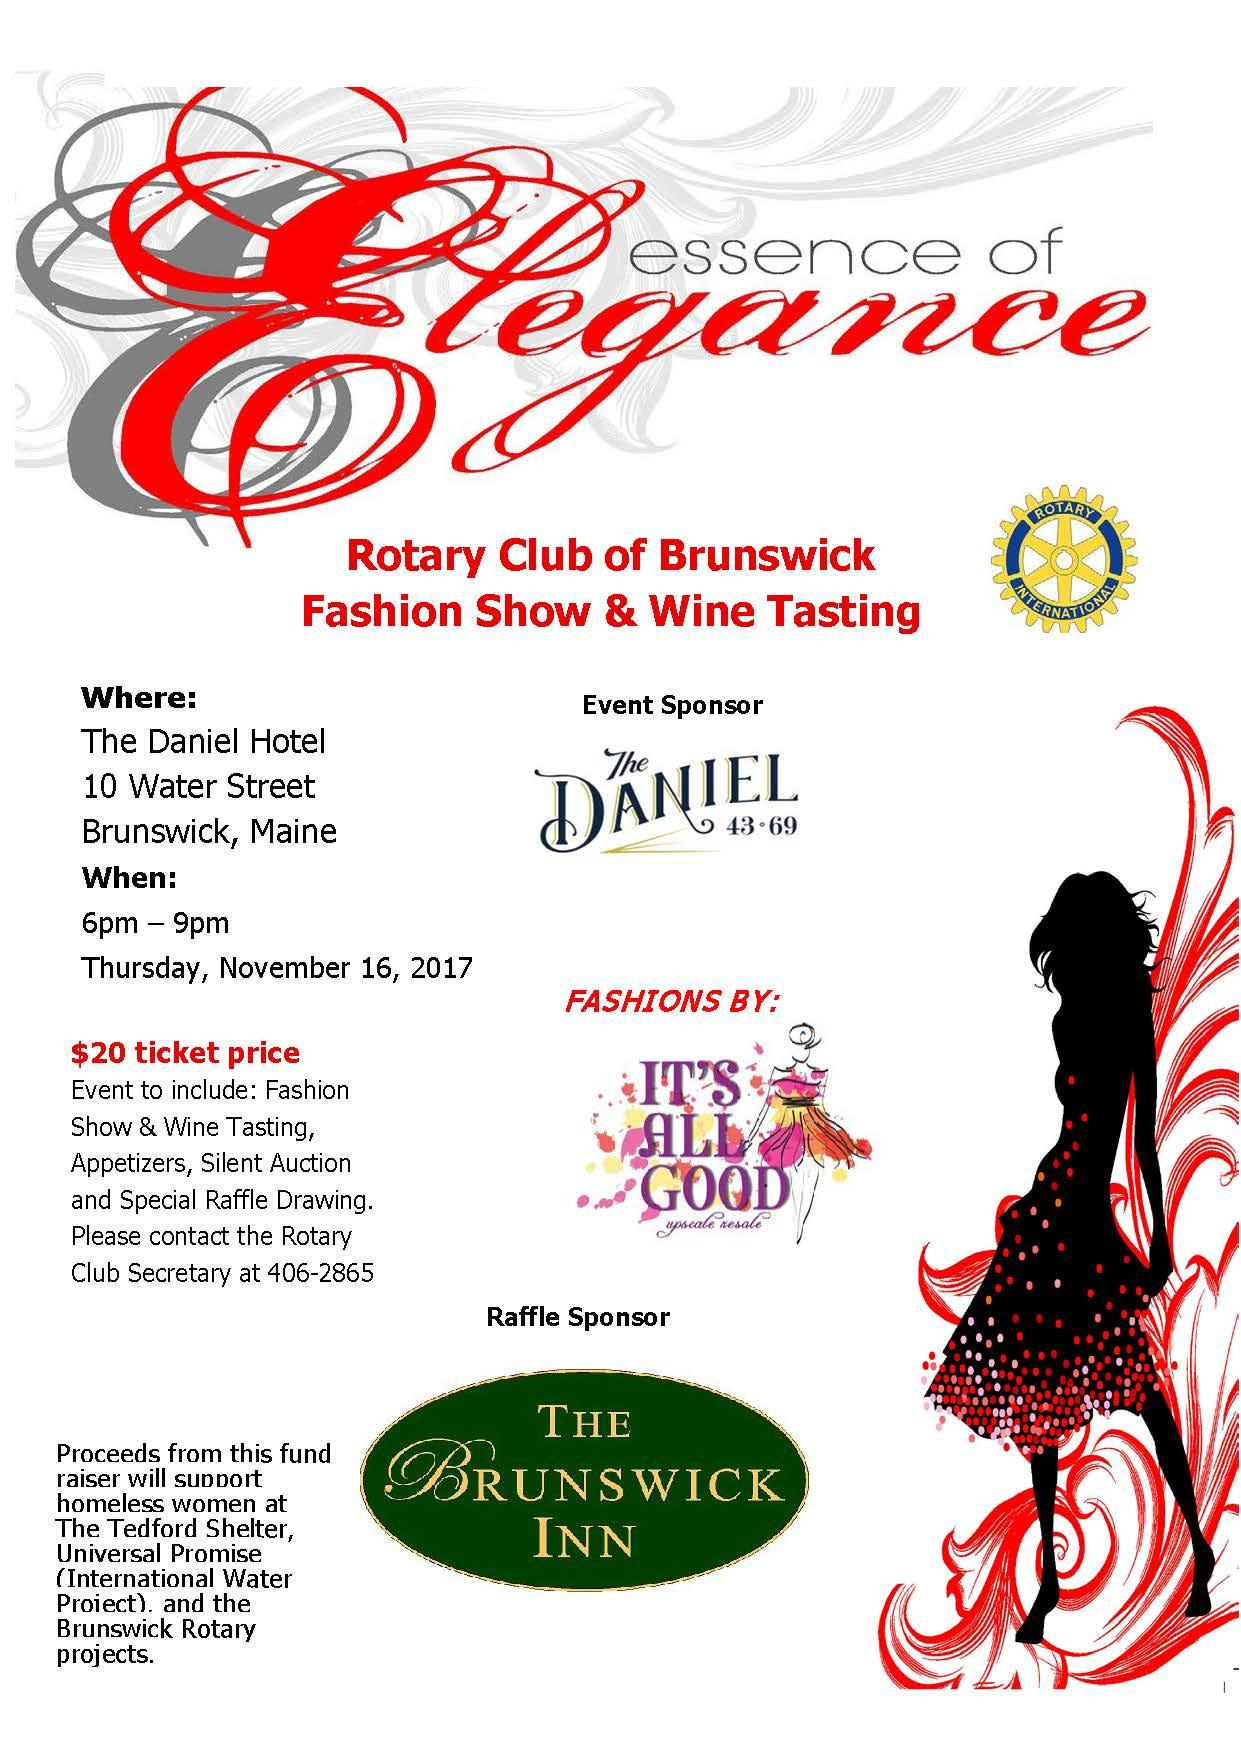 Rotary Club of Brunswick Fashion Show & Wine Tasting